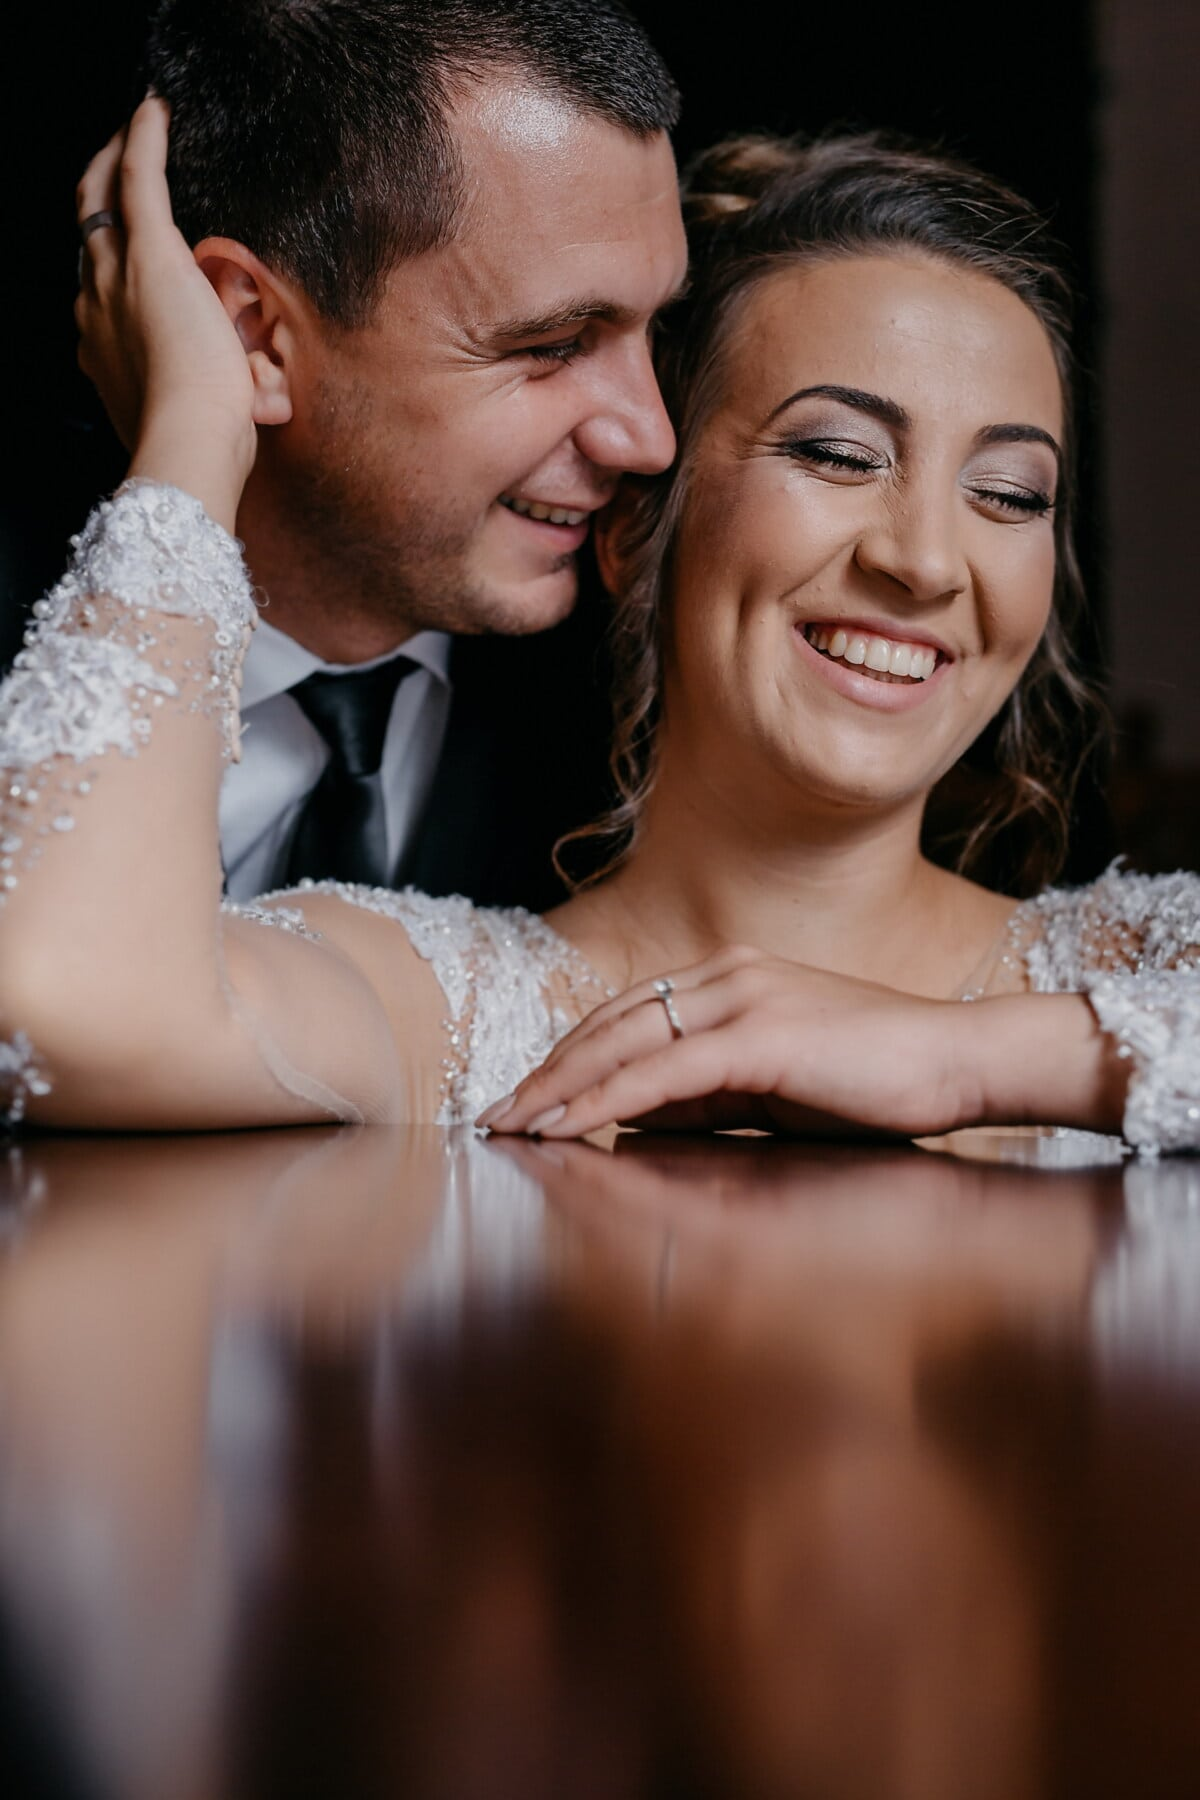 wedding, groom, woman, love, couple, bride, fashion, romance, glamour, indoors